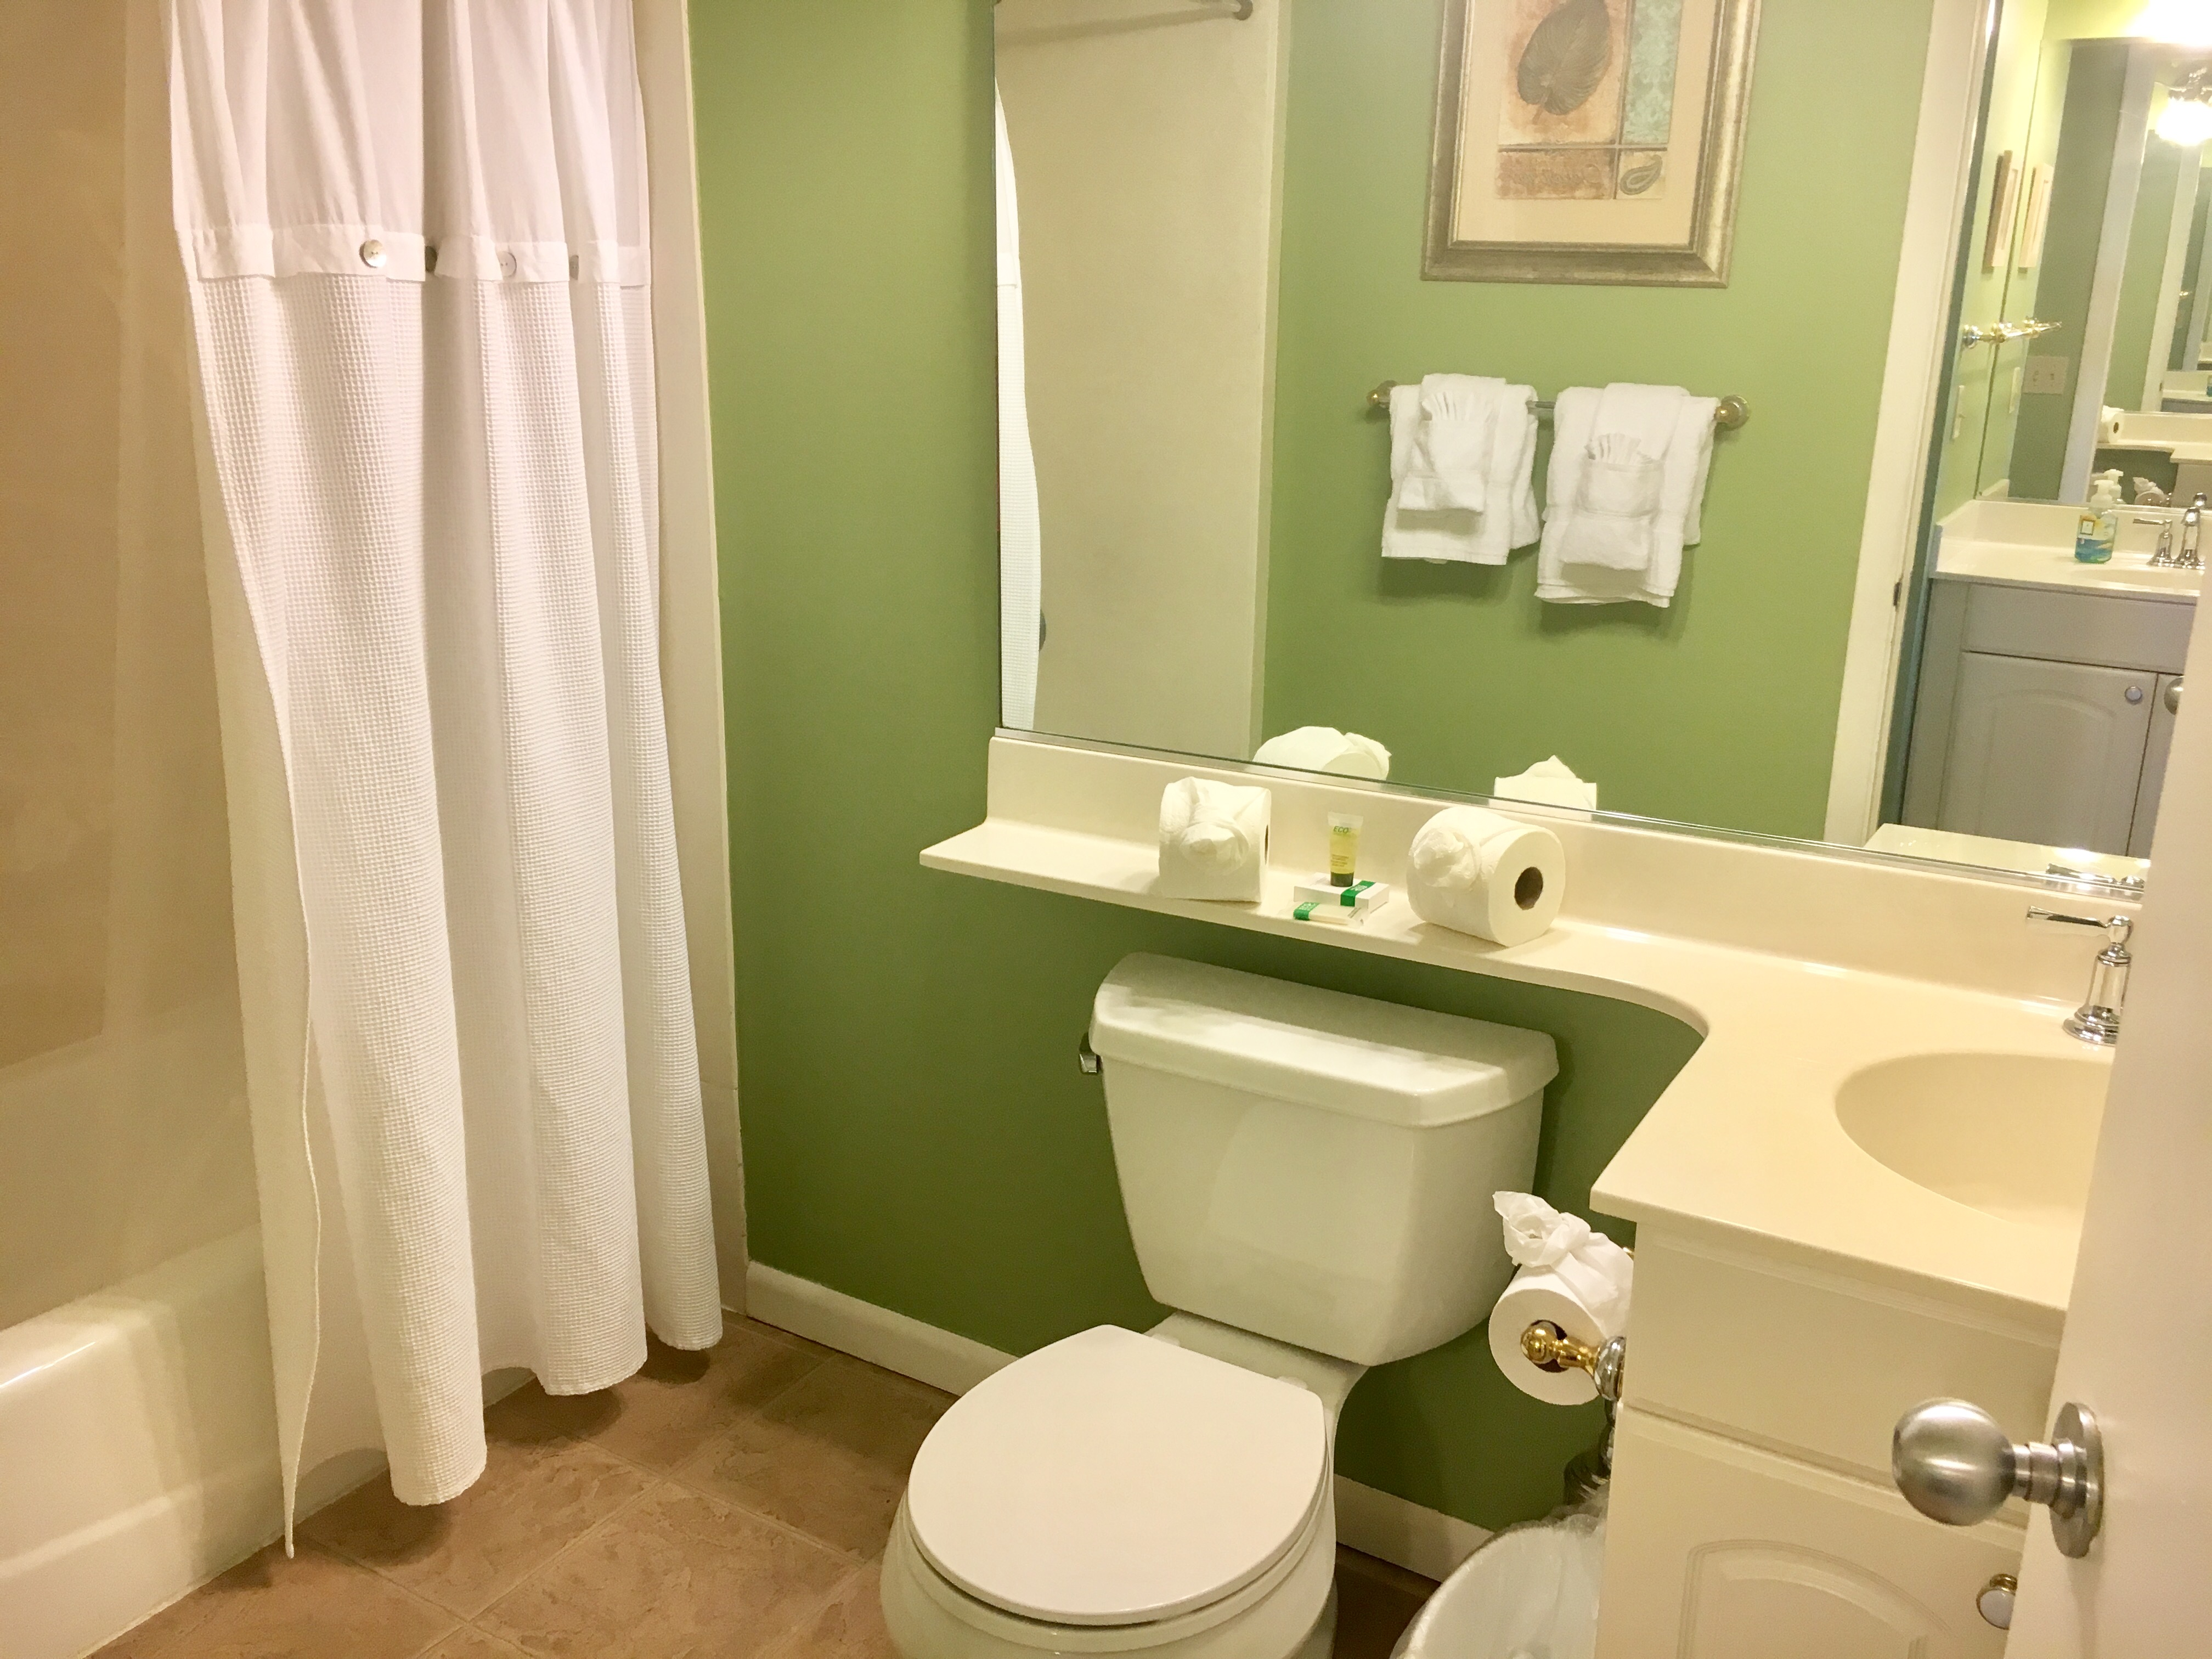 2nd bathroom has a shower/tub combination and separate sink.